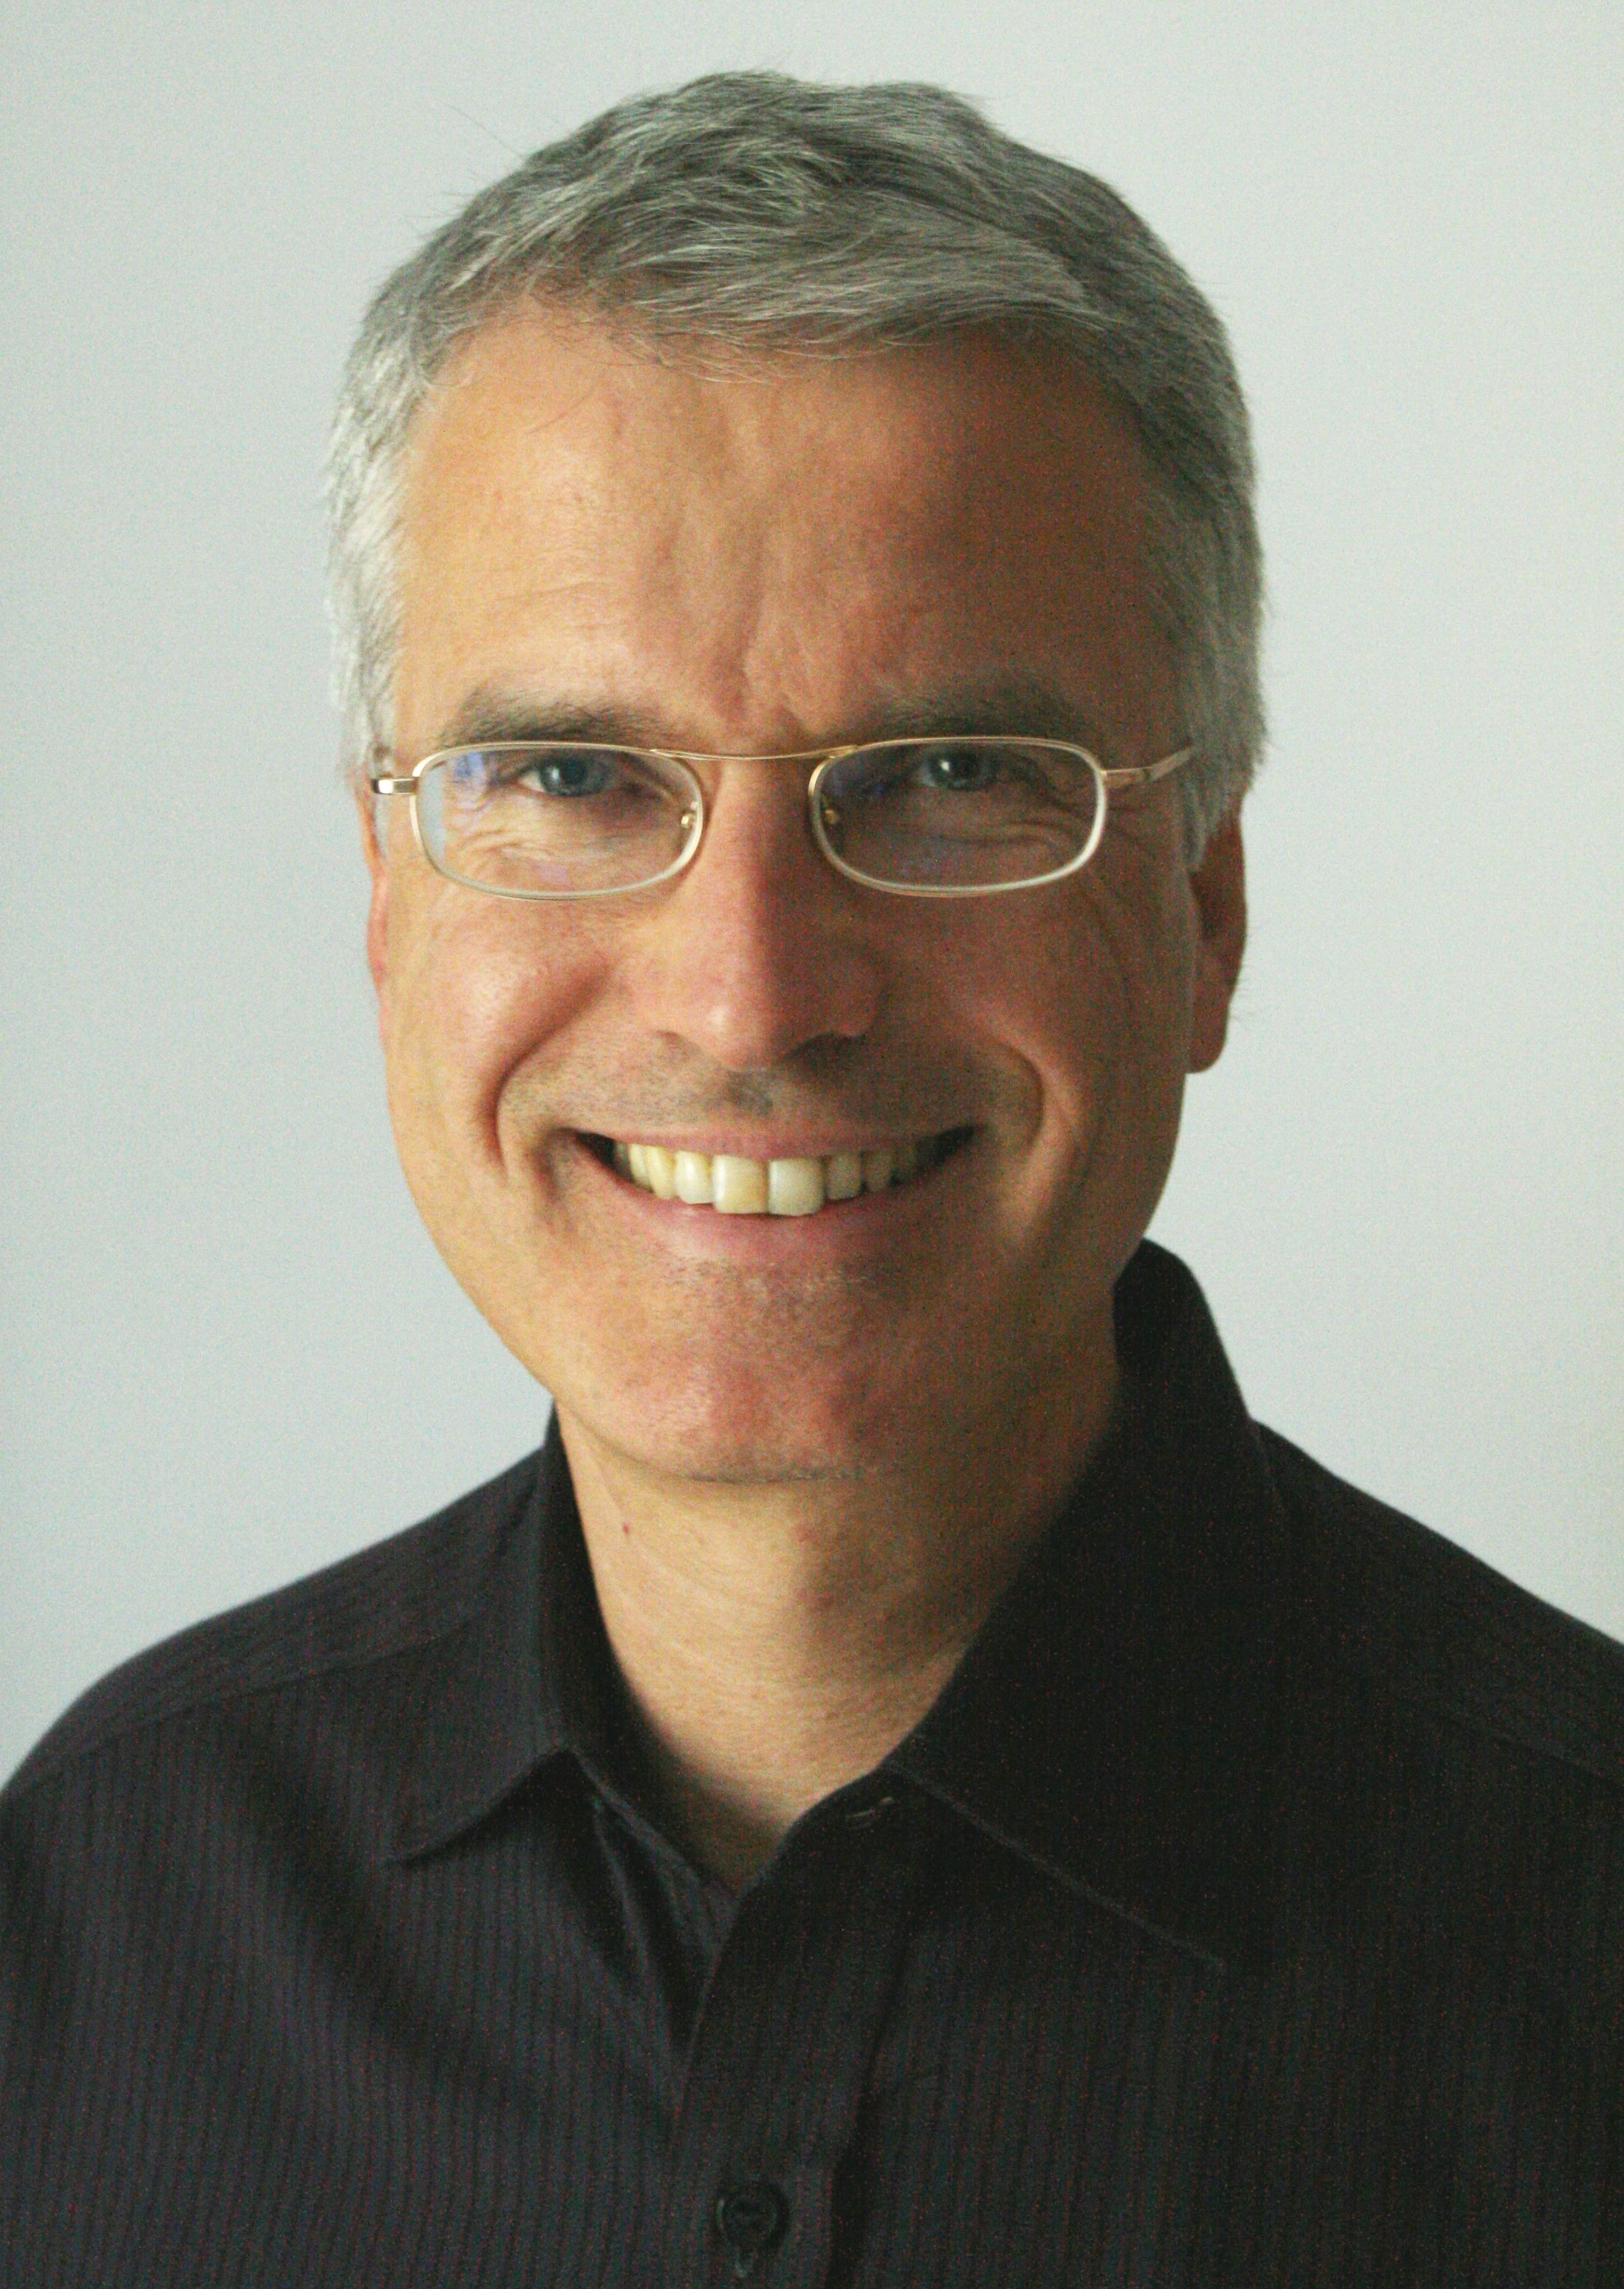 Man with grey hair and black top